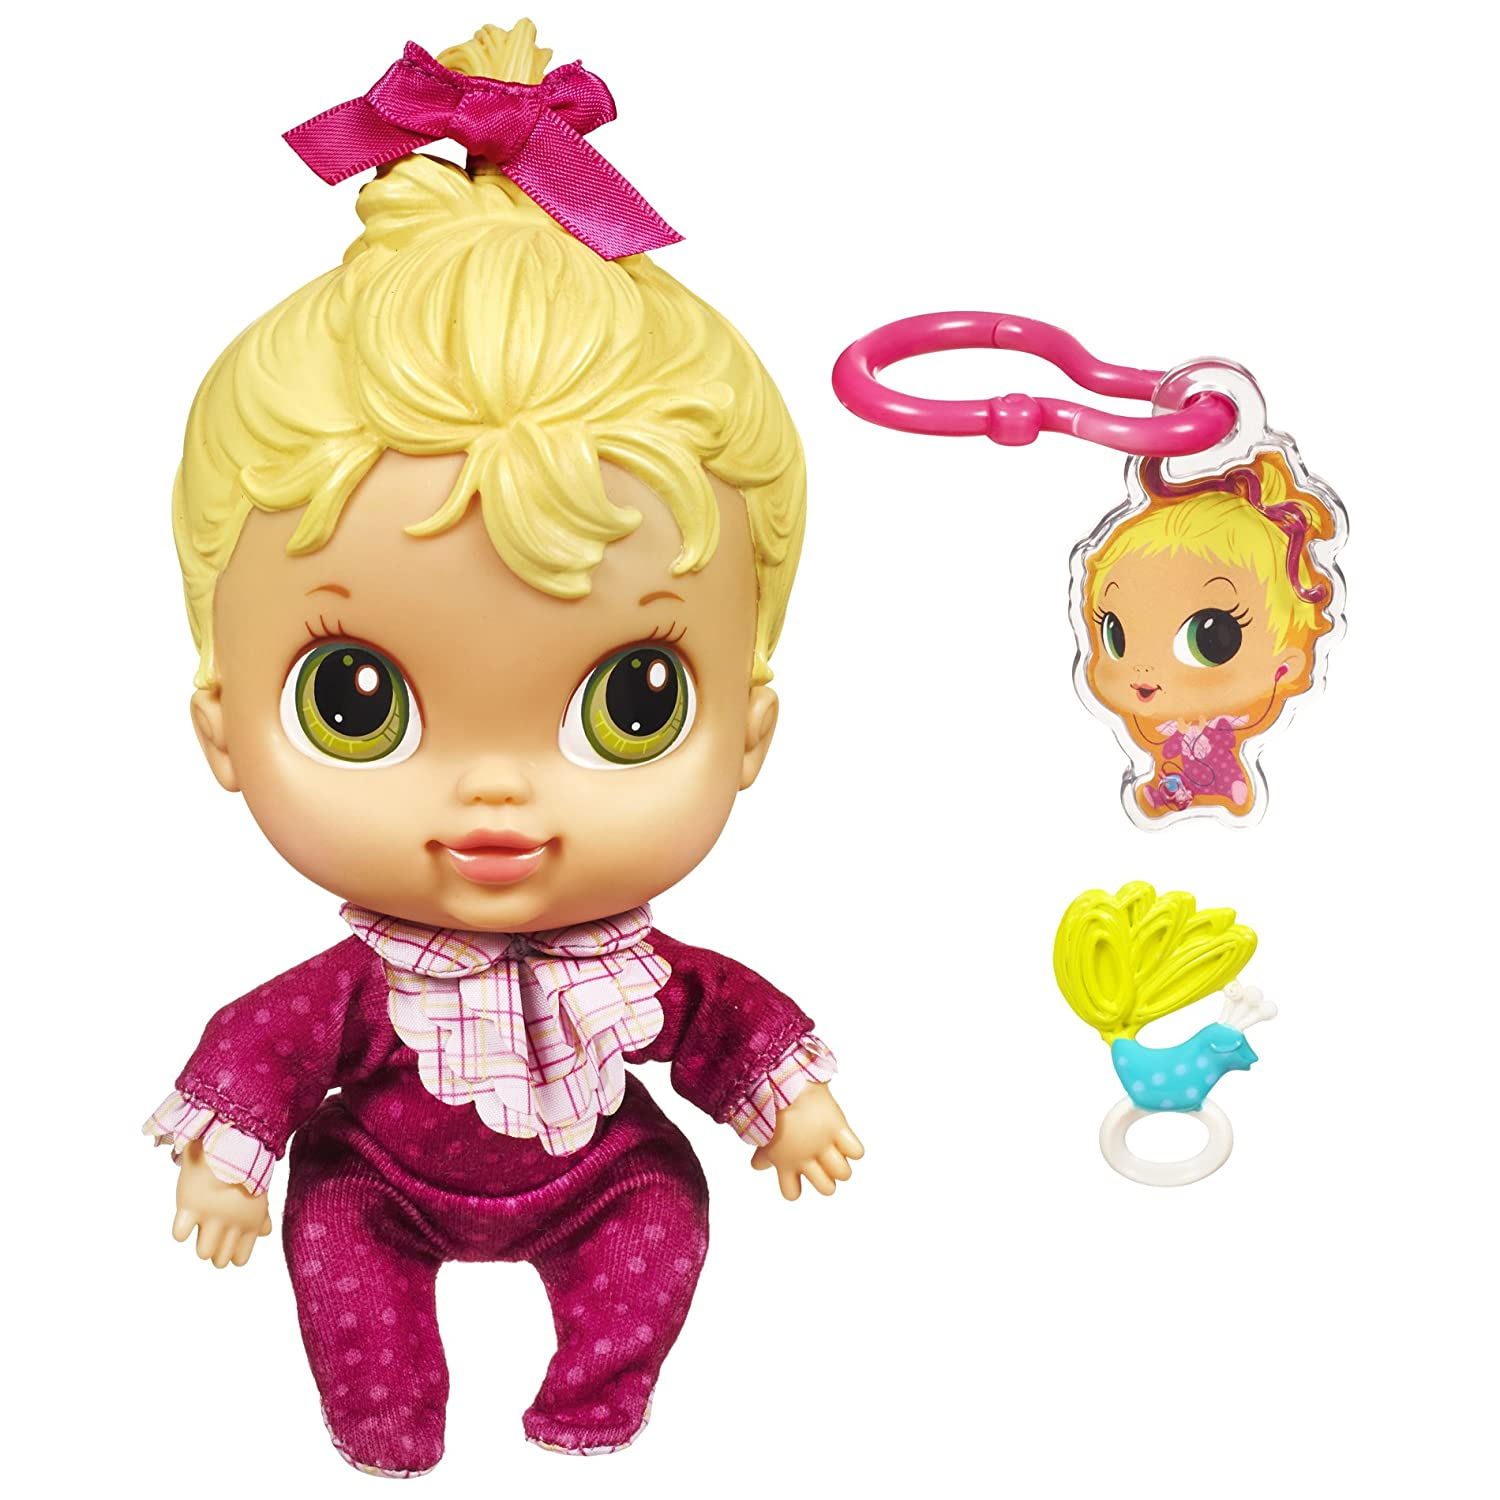 Uncategorized Criblife amazon com baby alive crib life friendship dolls ella song toys games